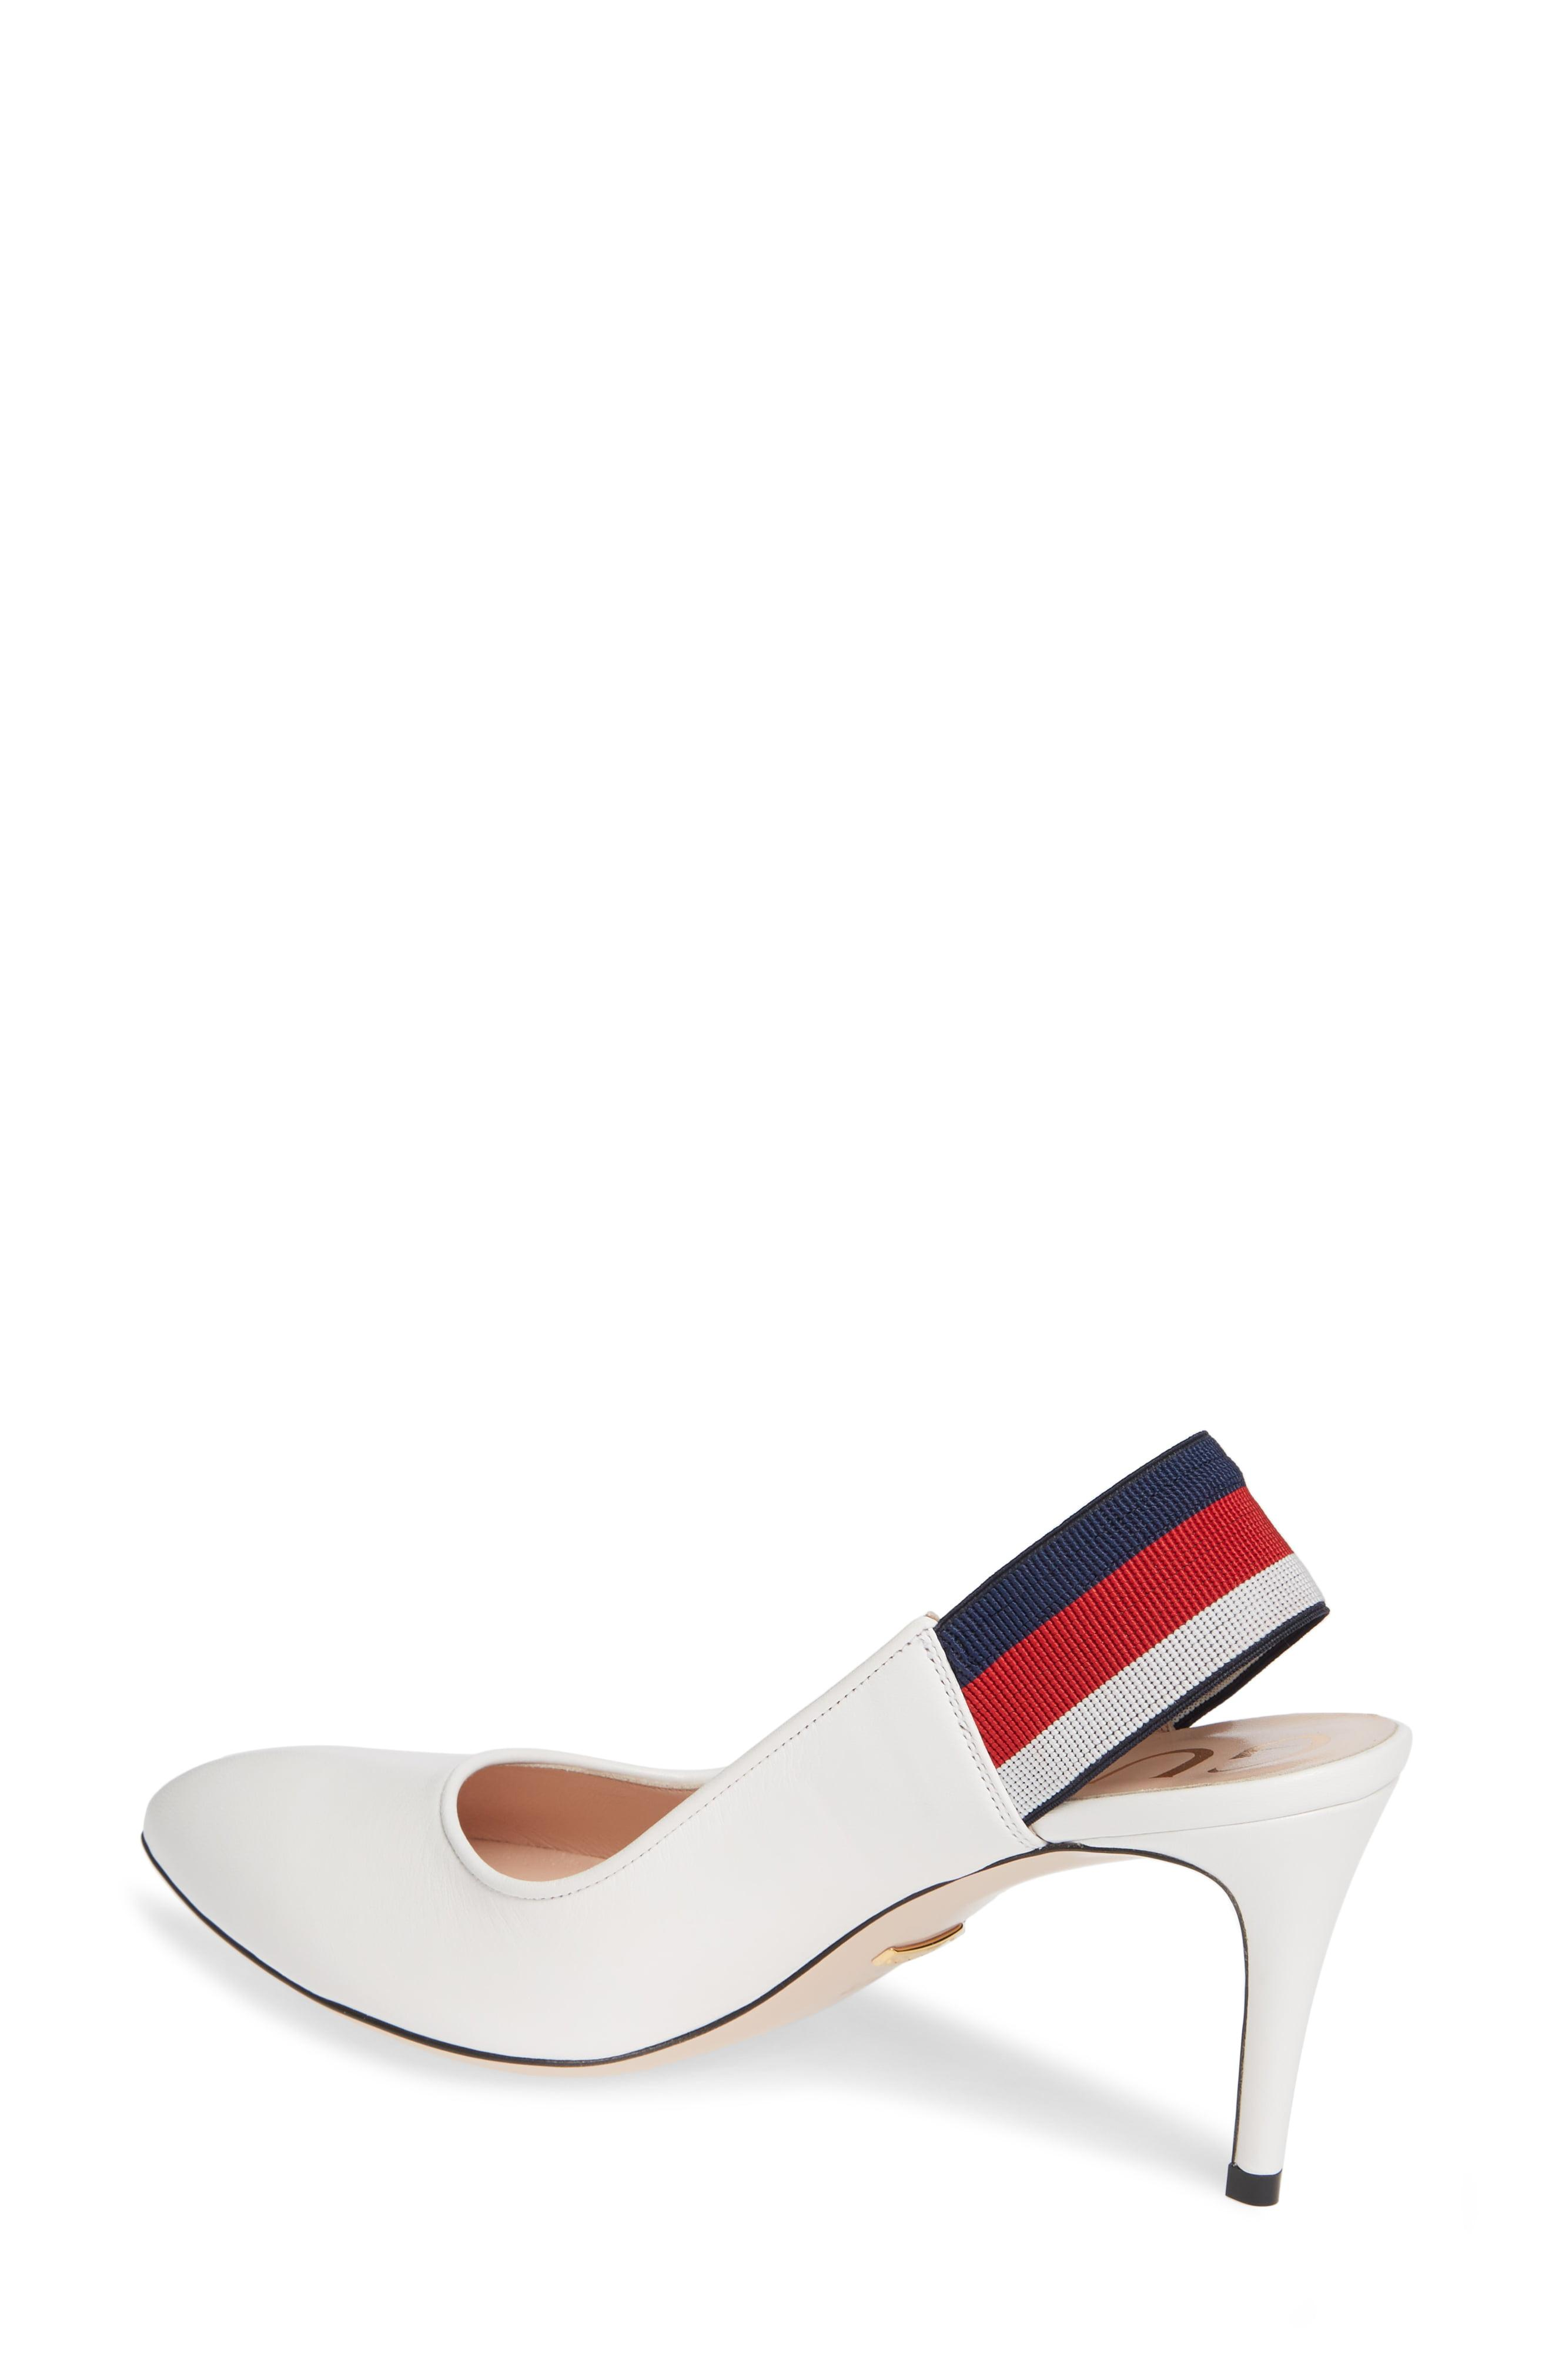 6bdfc6e43c6 Lyst - Gucci Leather Web Mid-heel Slingback Pump in White - Save 10%